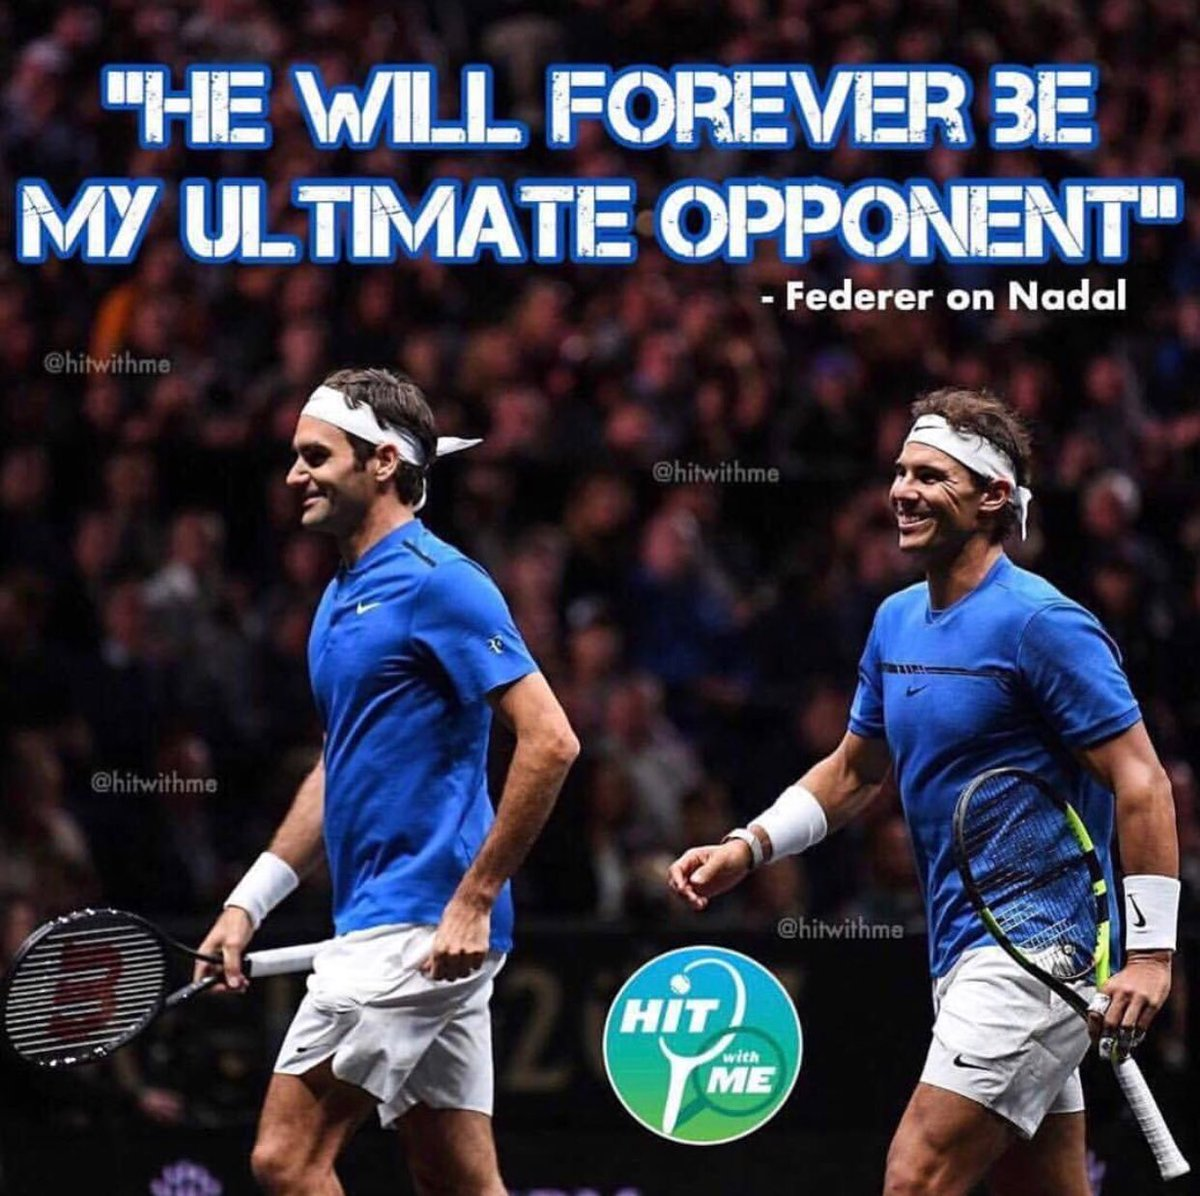 &quot;He will forever be my ultimate opponent. He was the one who helped me to improve the most and be a better player&quot; - @rogerfederer speaking about his rivalry with @rafaelnadal  #hitwithme #usopen<br>http://pic.twitter.com/Q63CB2HEnM